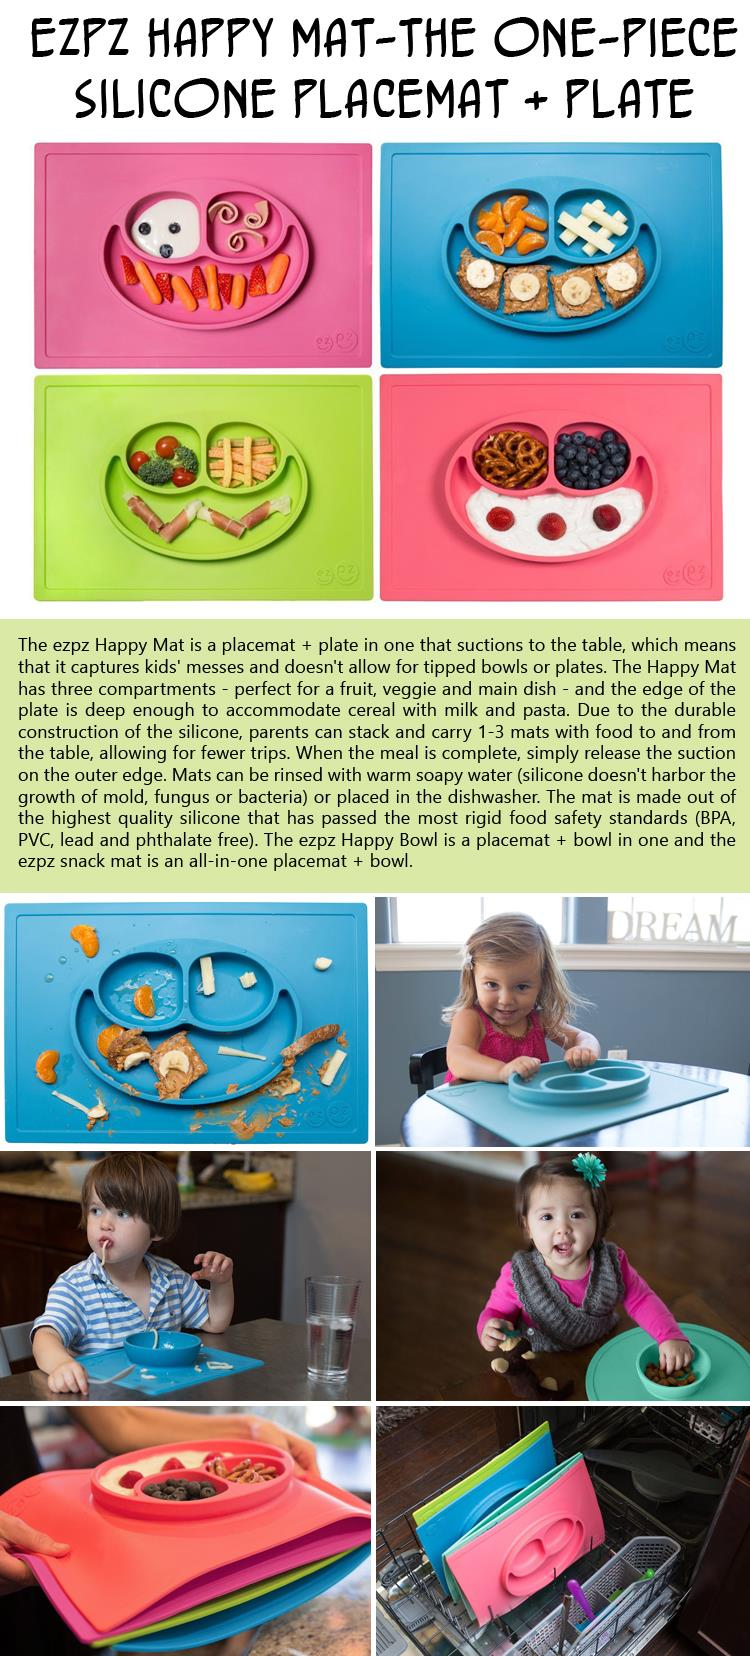 ezpz Happy Mat-The One-piece silicone placemat and plate